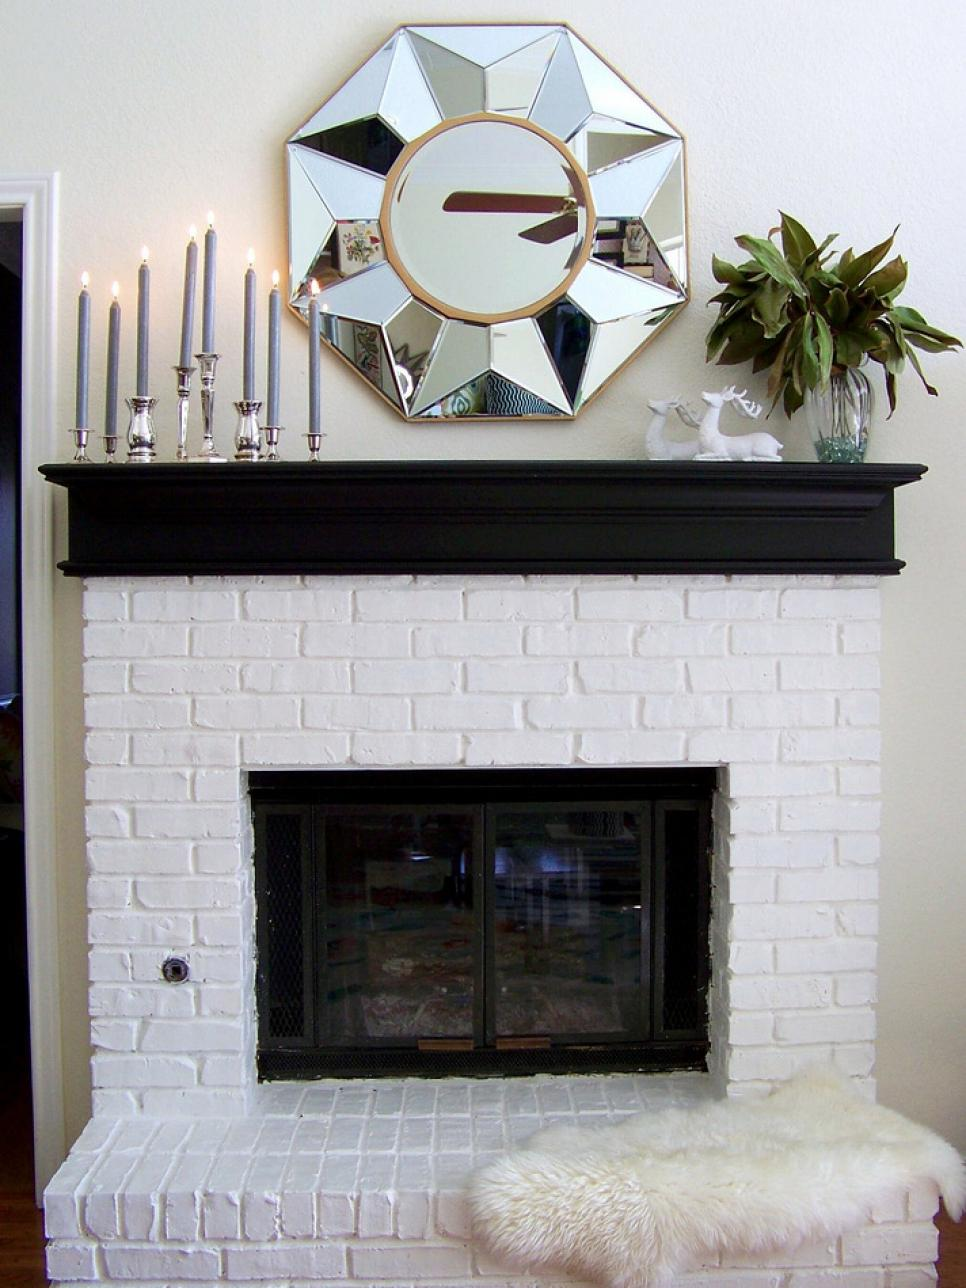 Mantel Decorating Ideas For The Holidays: Tips To Make Fireplace Mantel Décor For A Wedding Day